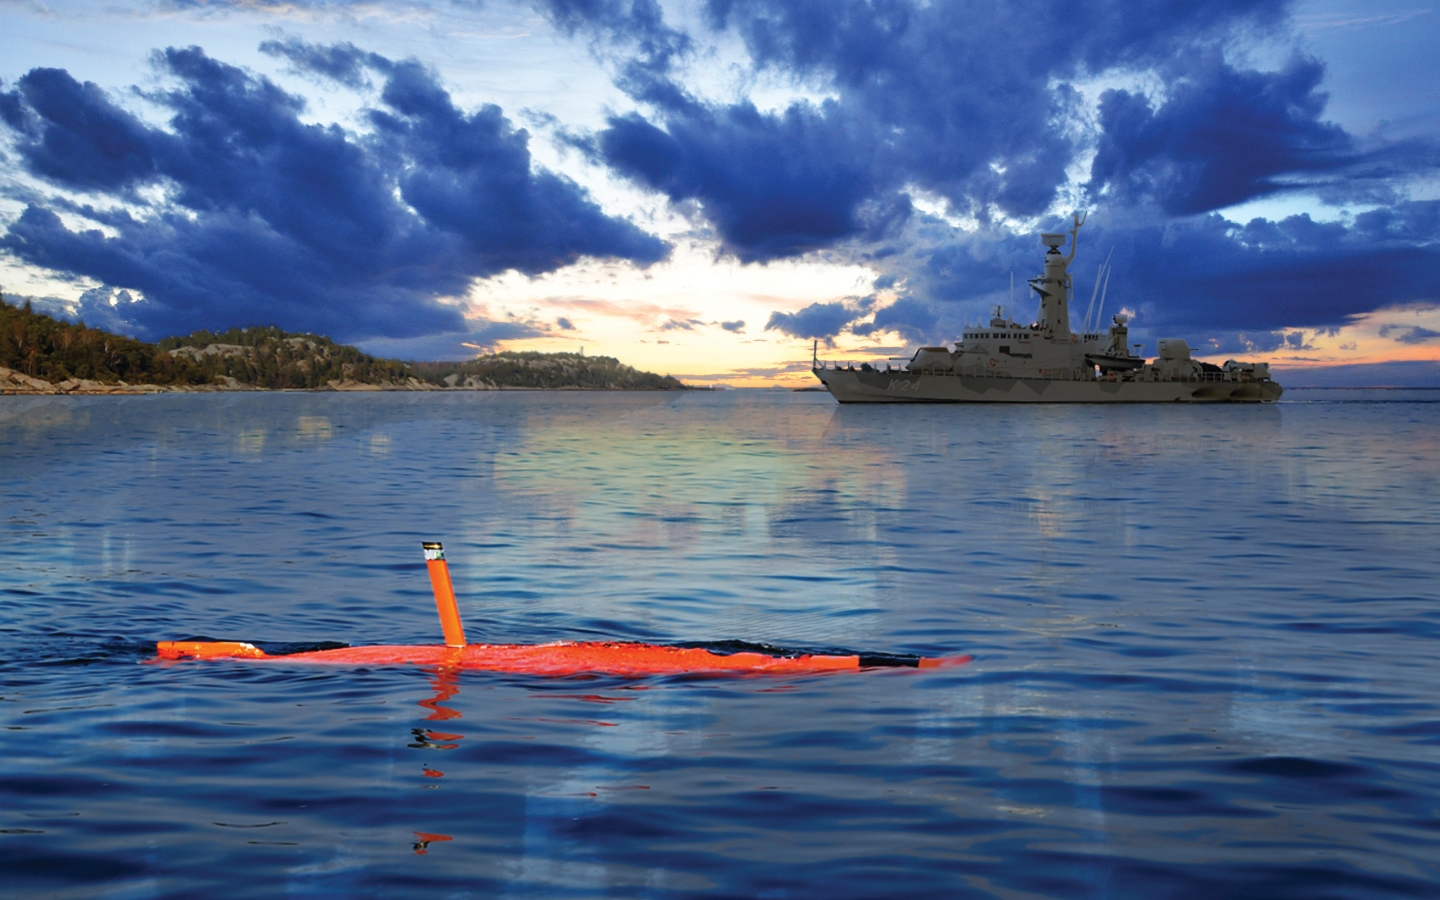 New contract with the Royal Navy will extend QinetiQ's test and evaluation capabilities into ASW training